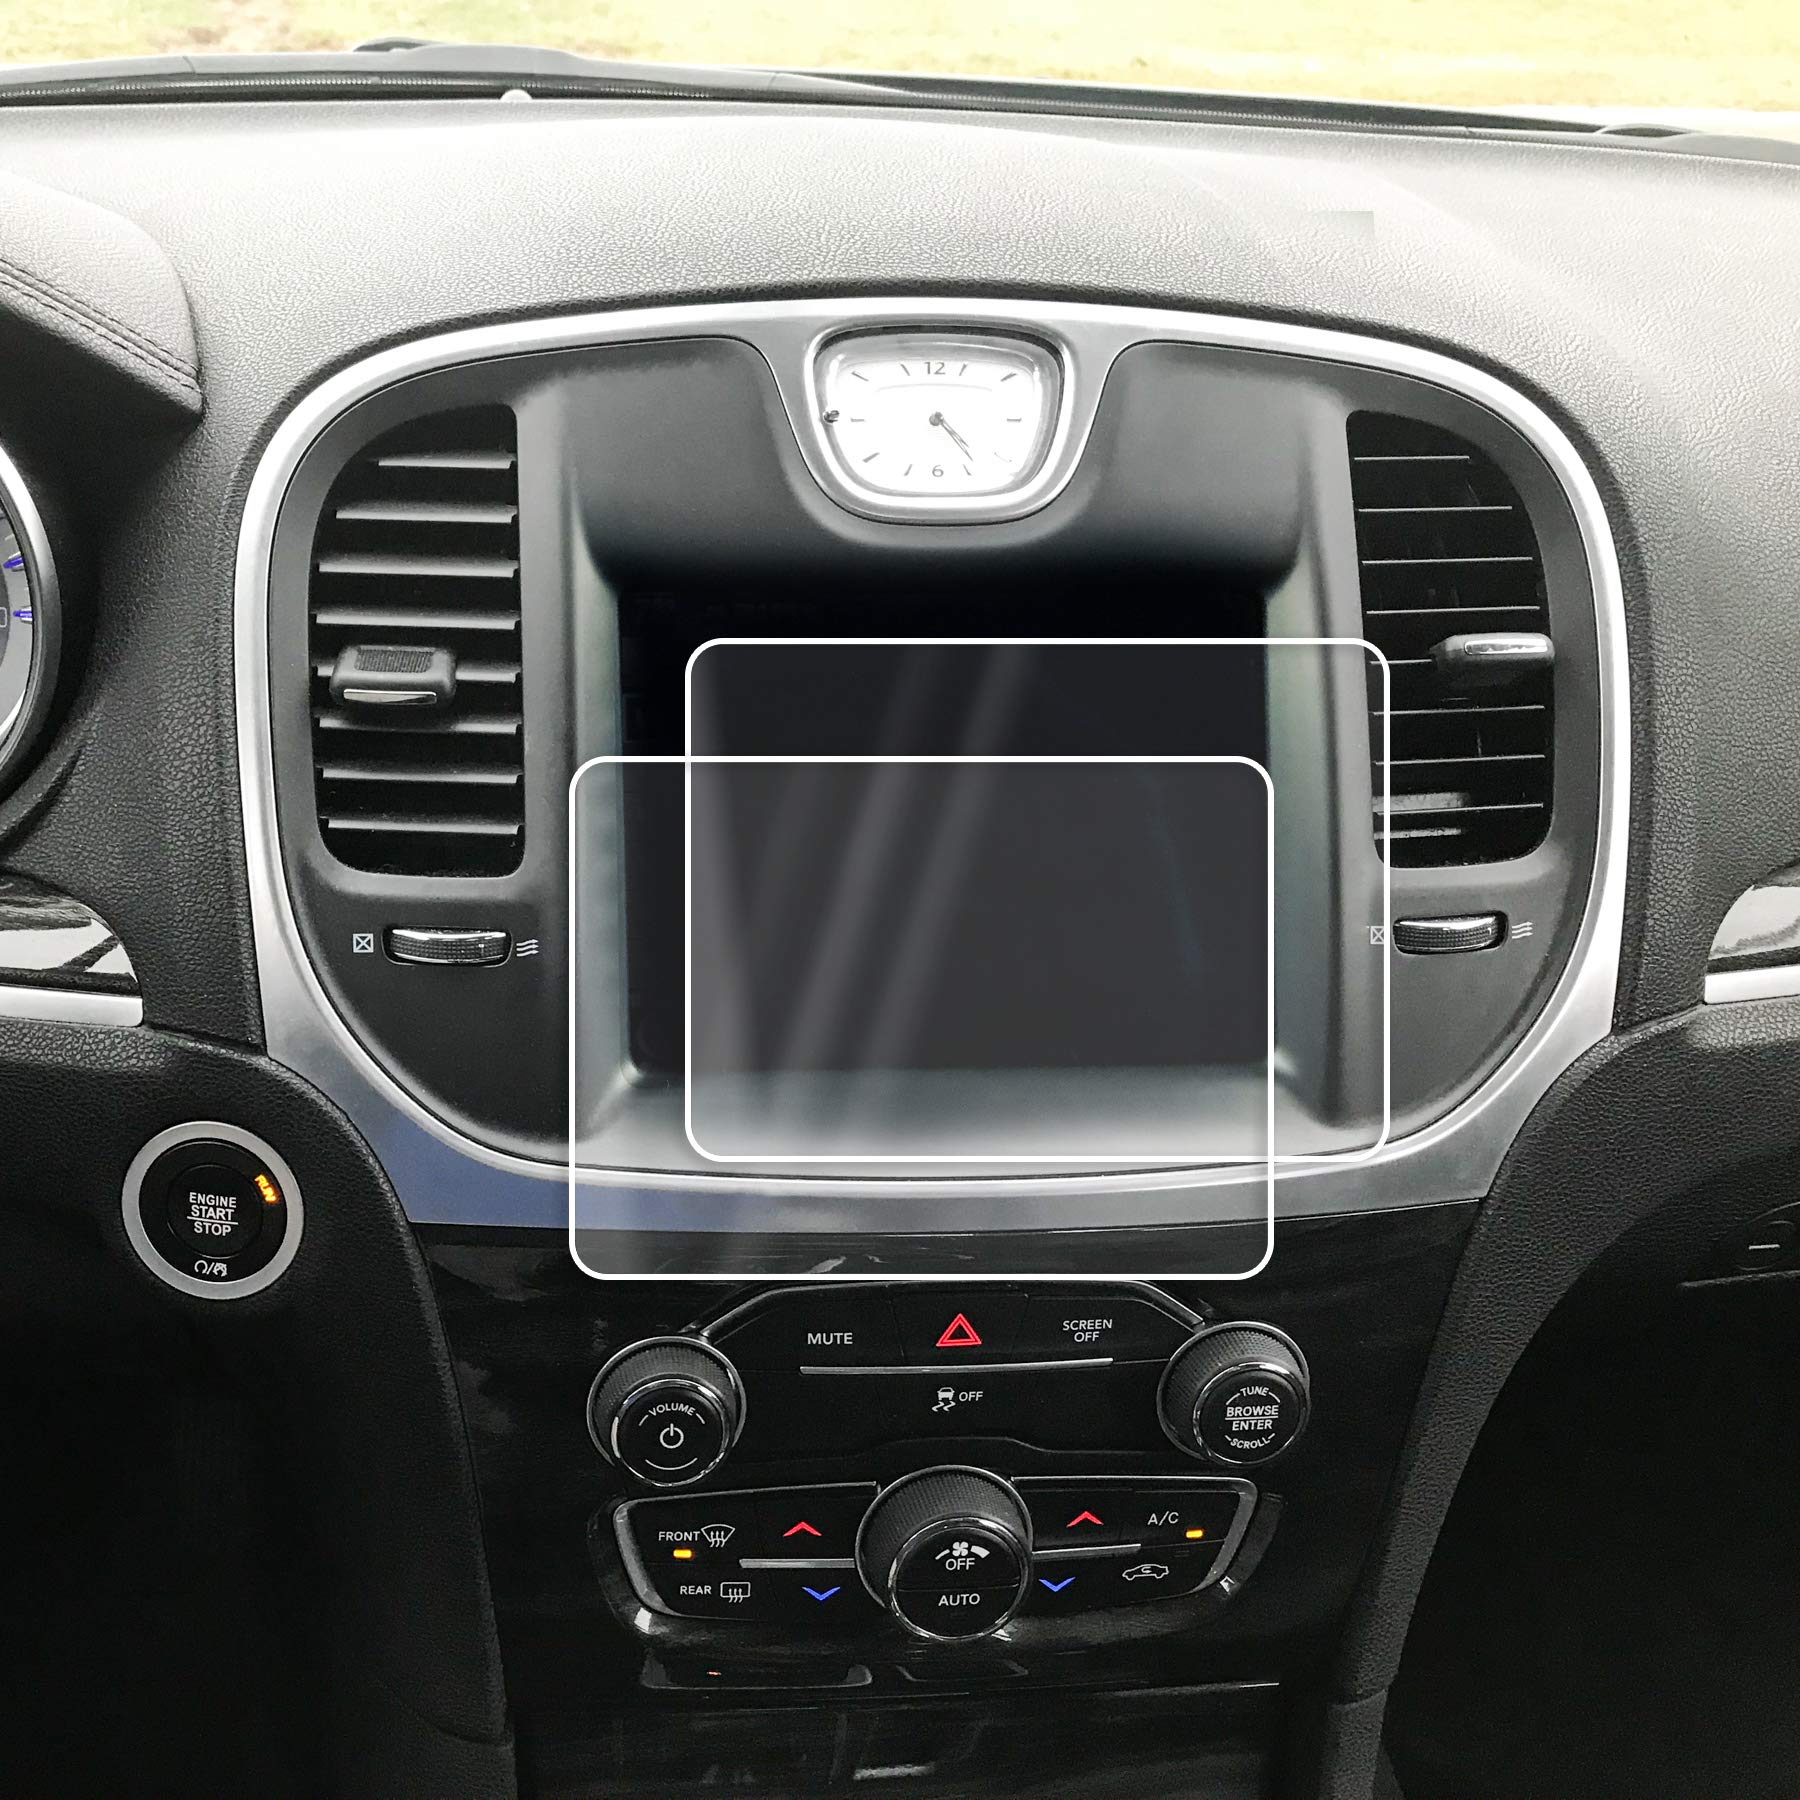 Red Hound Auto Screen Saver 2pc Compatible with Chrysler 300 Uconnect 2011-2019 Invisible High Clarity Touch Display Protector Minimizes Fingerprints 8.4 Inch